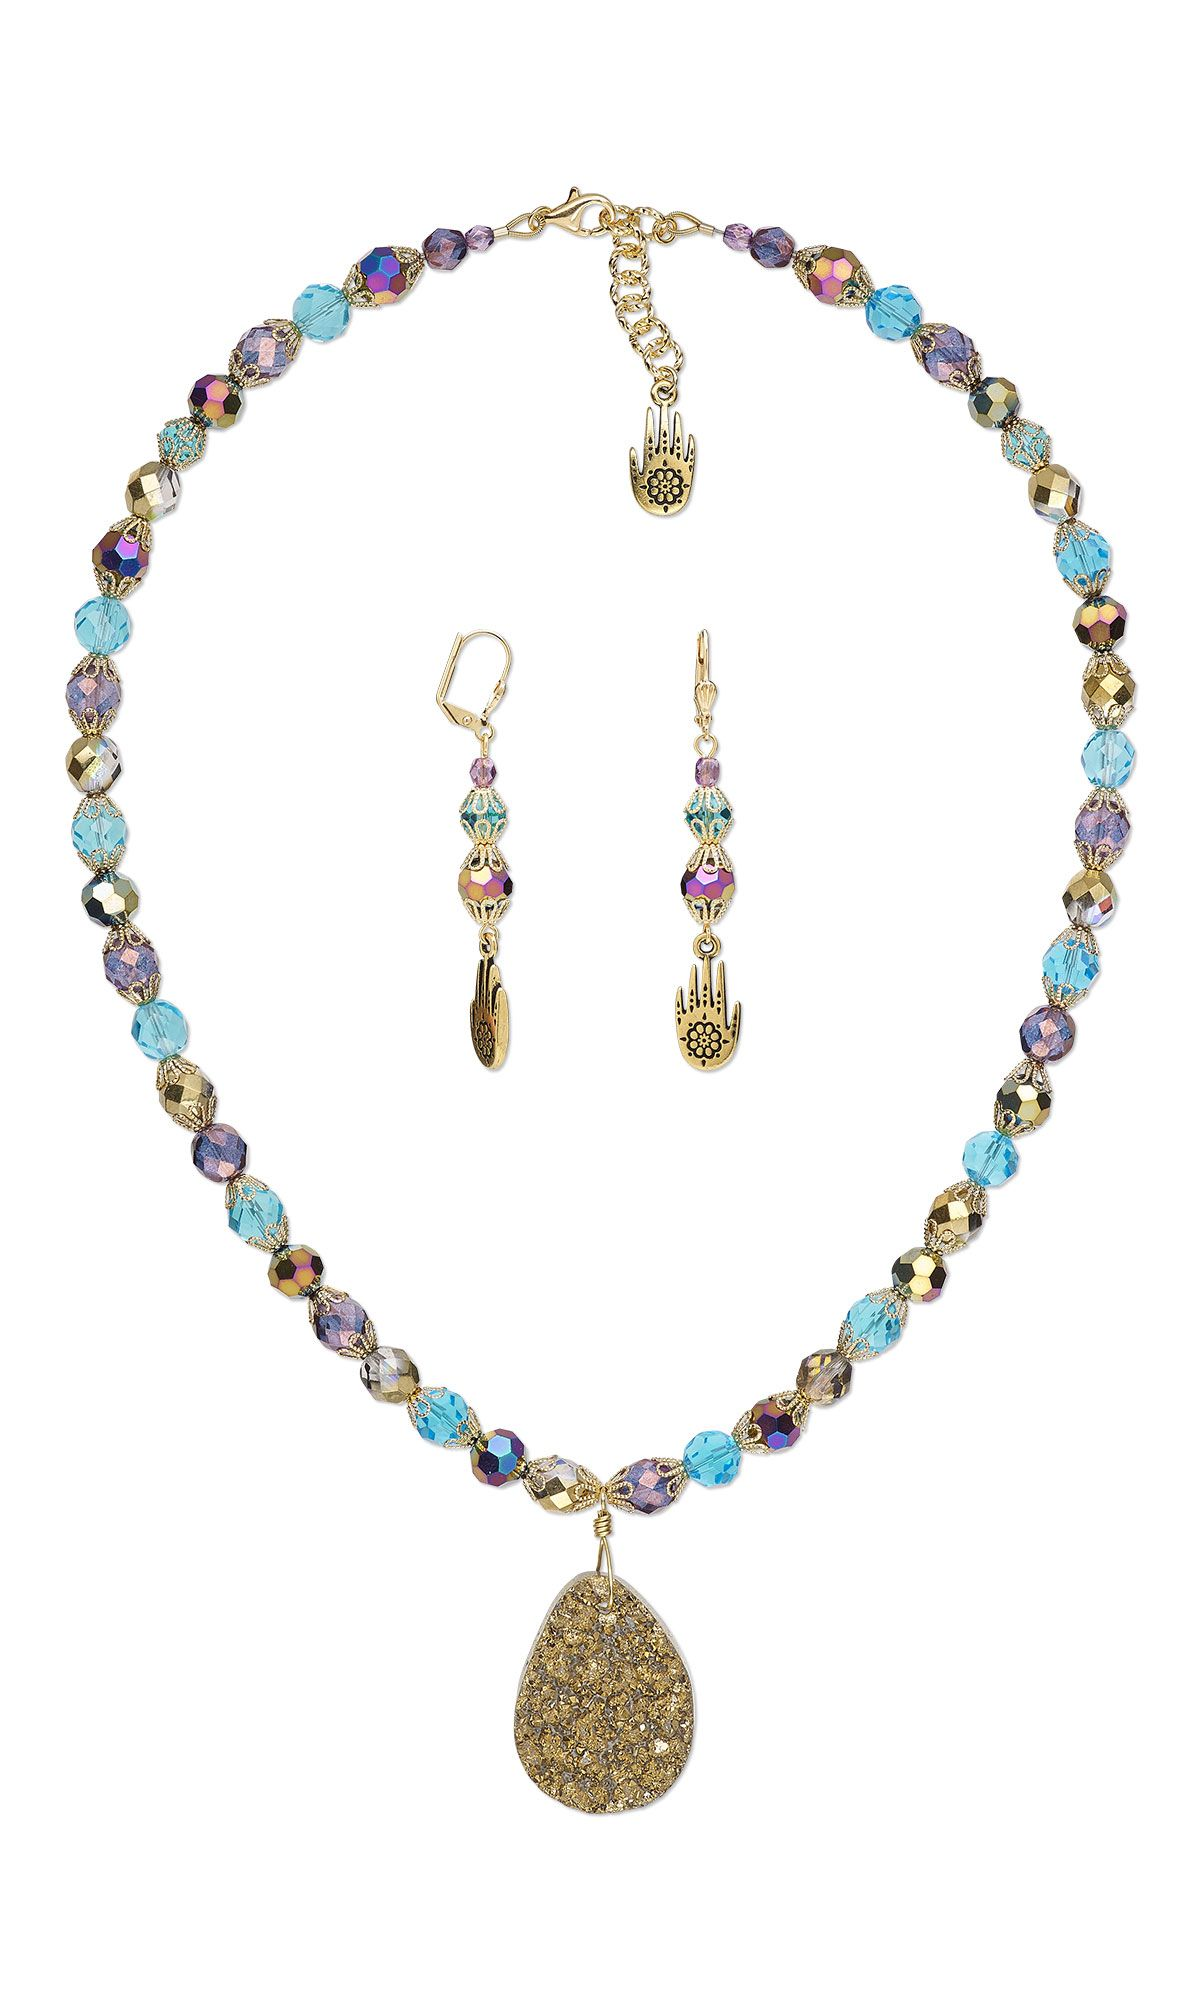 jewelry design single strand necklace and earring set with druzy